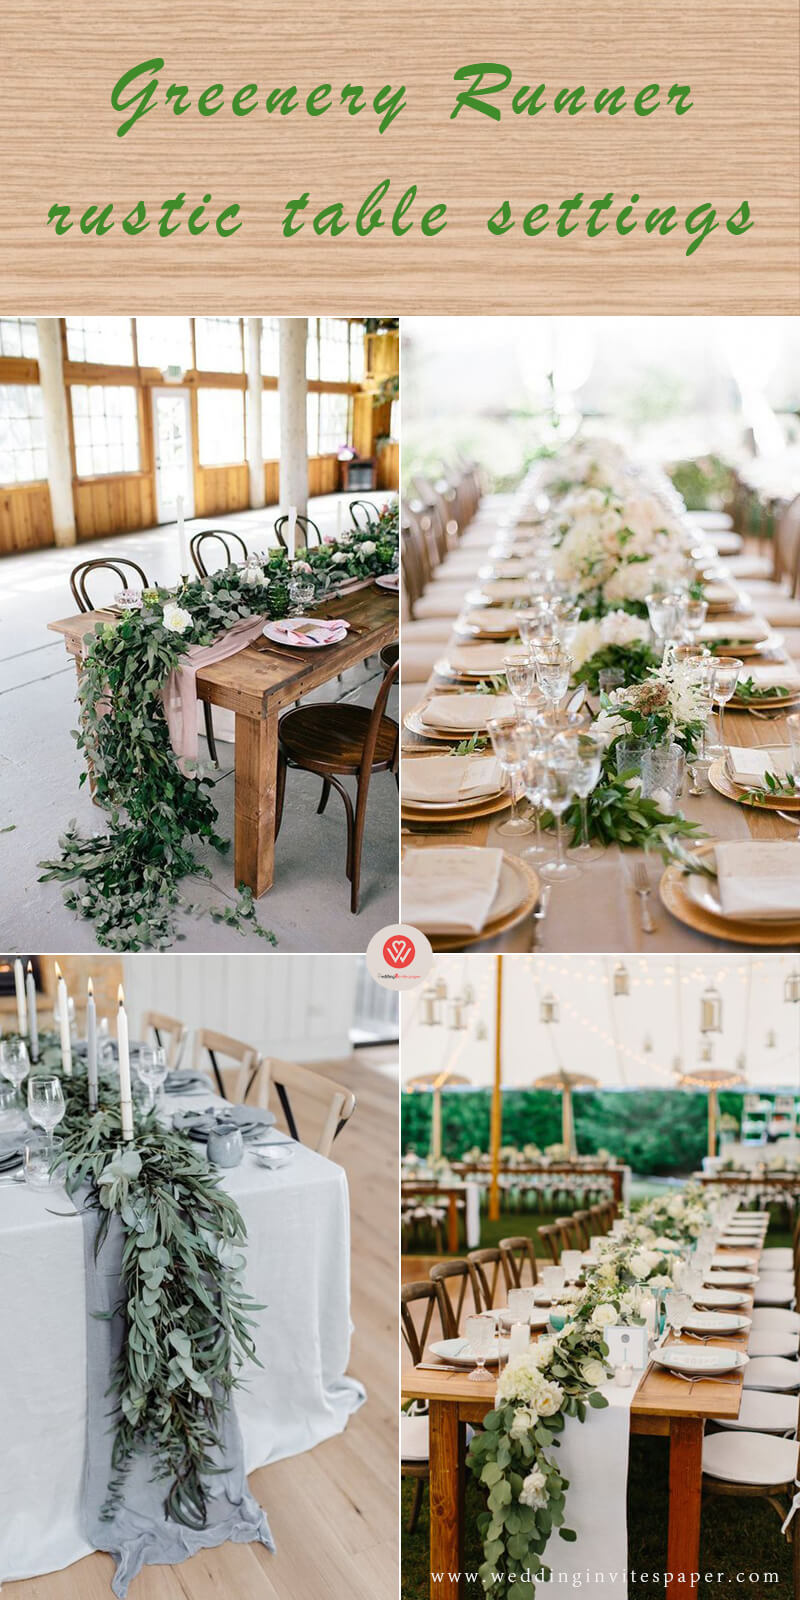 1 Greenery Runner rustic table settings.jpg